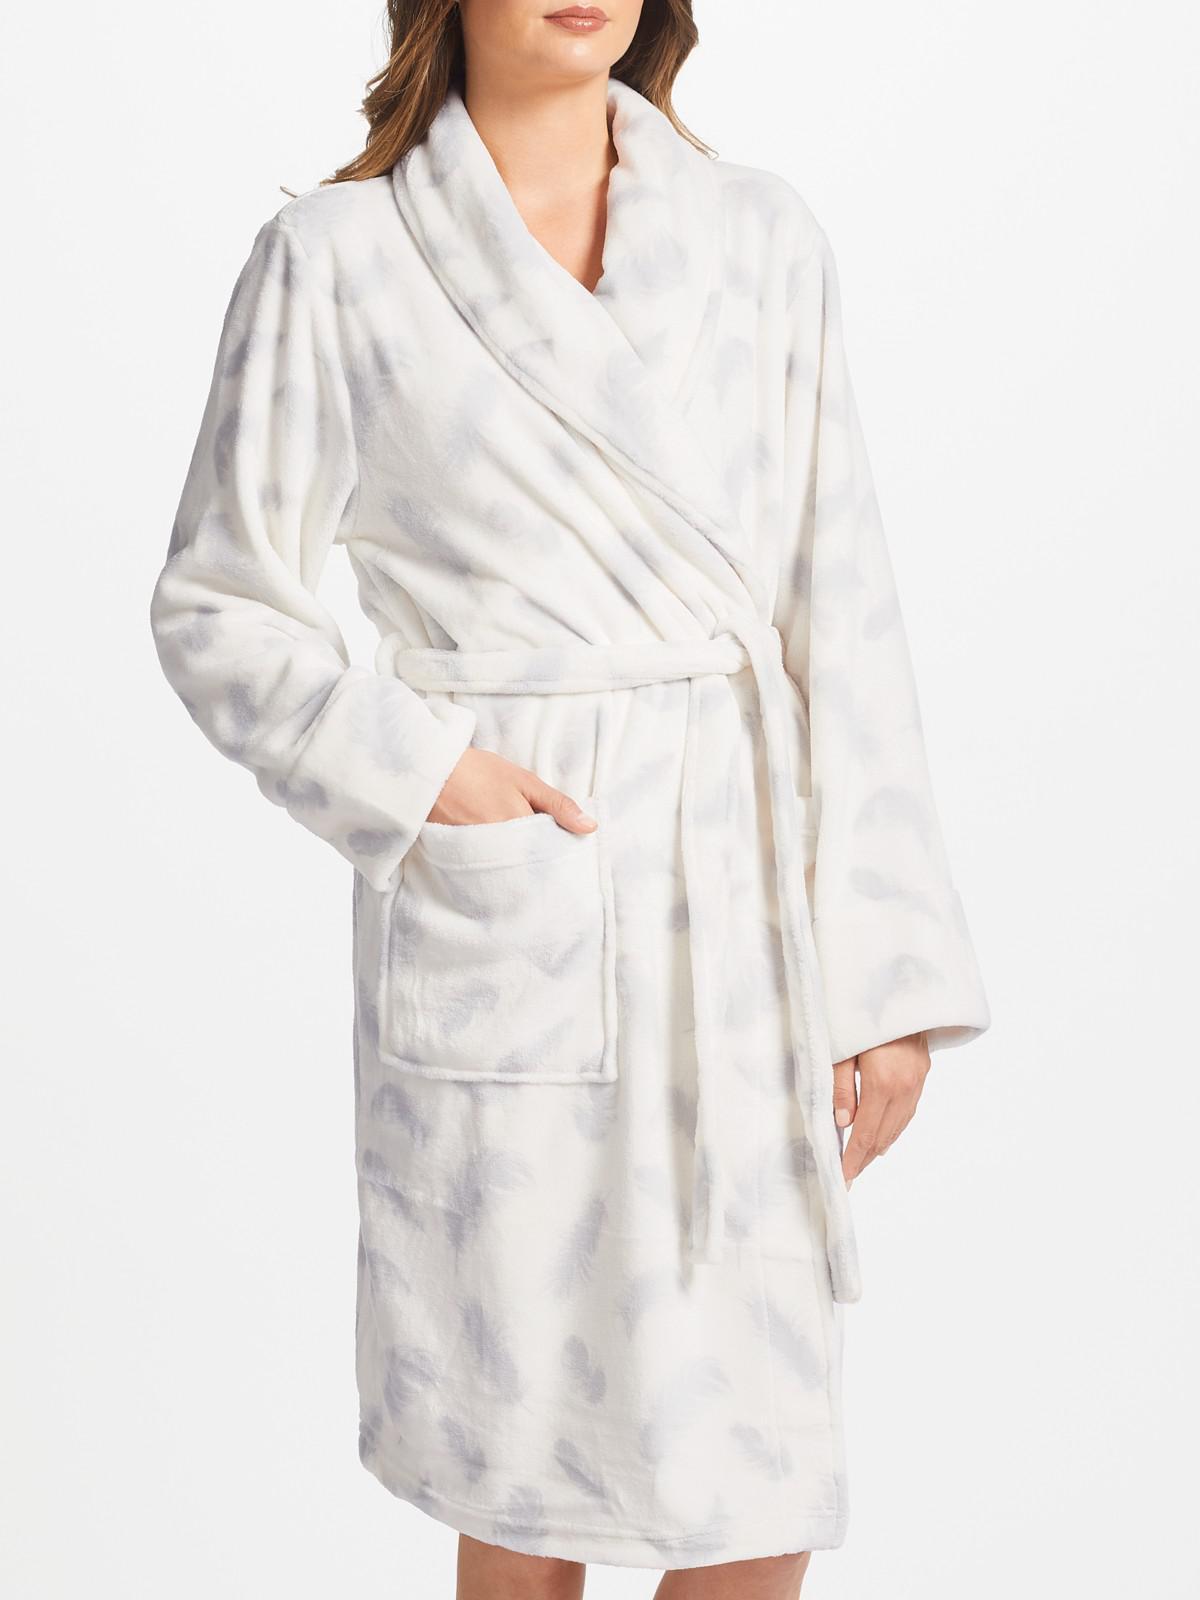 Perfect John Lewis Dressing Gown Image - Best Evening Gown ...